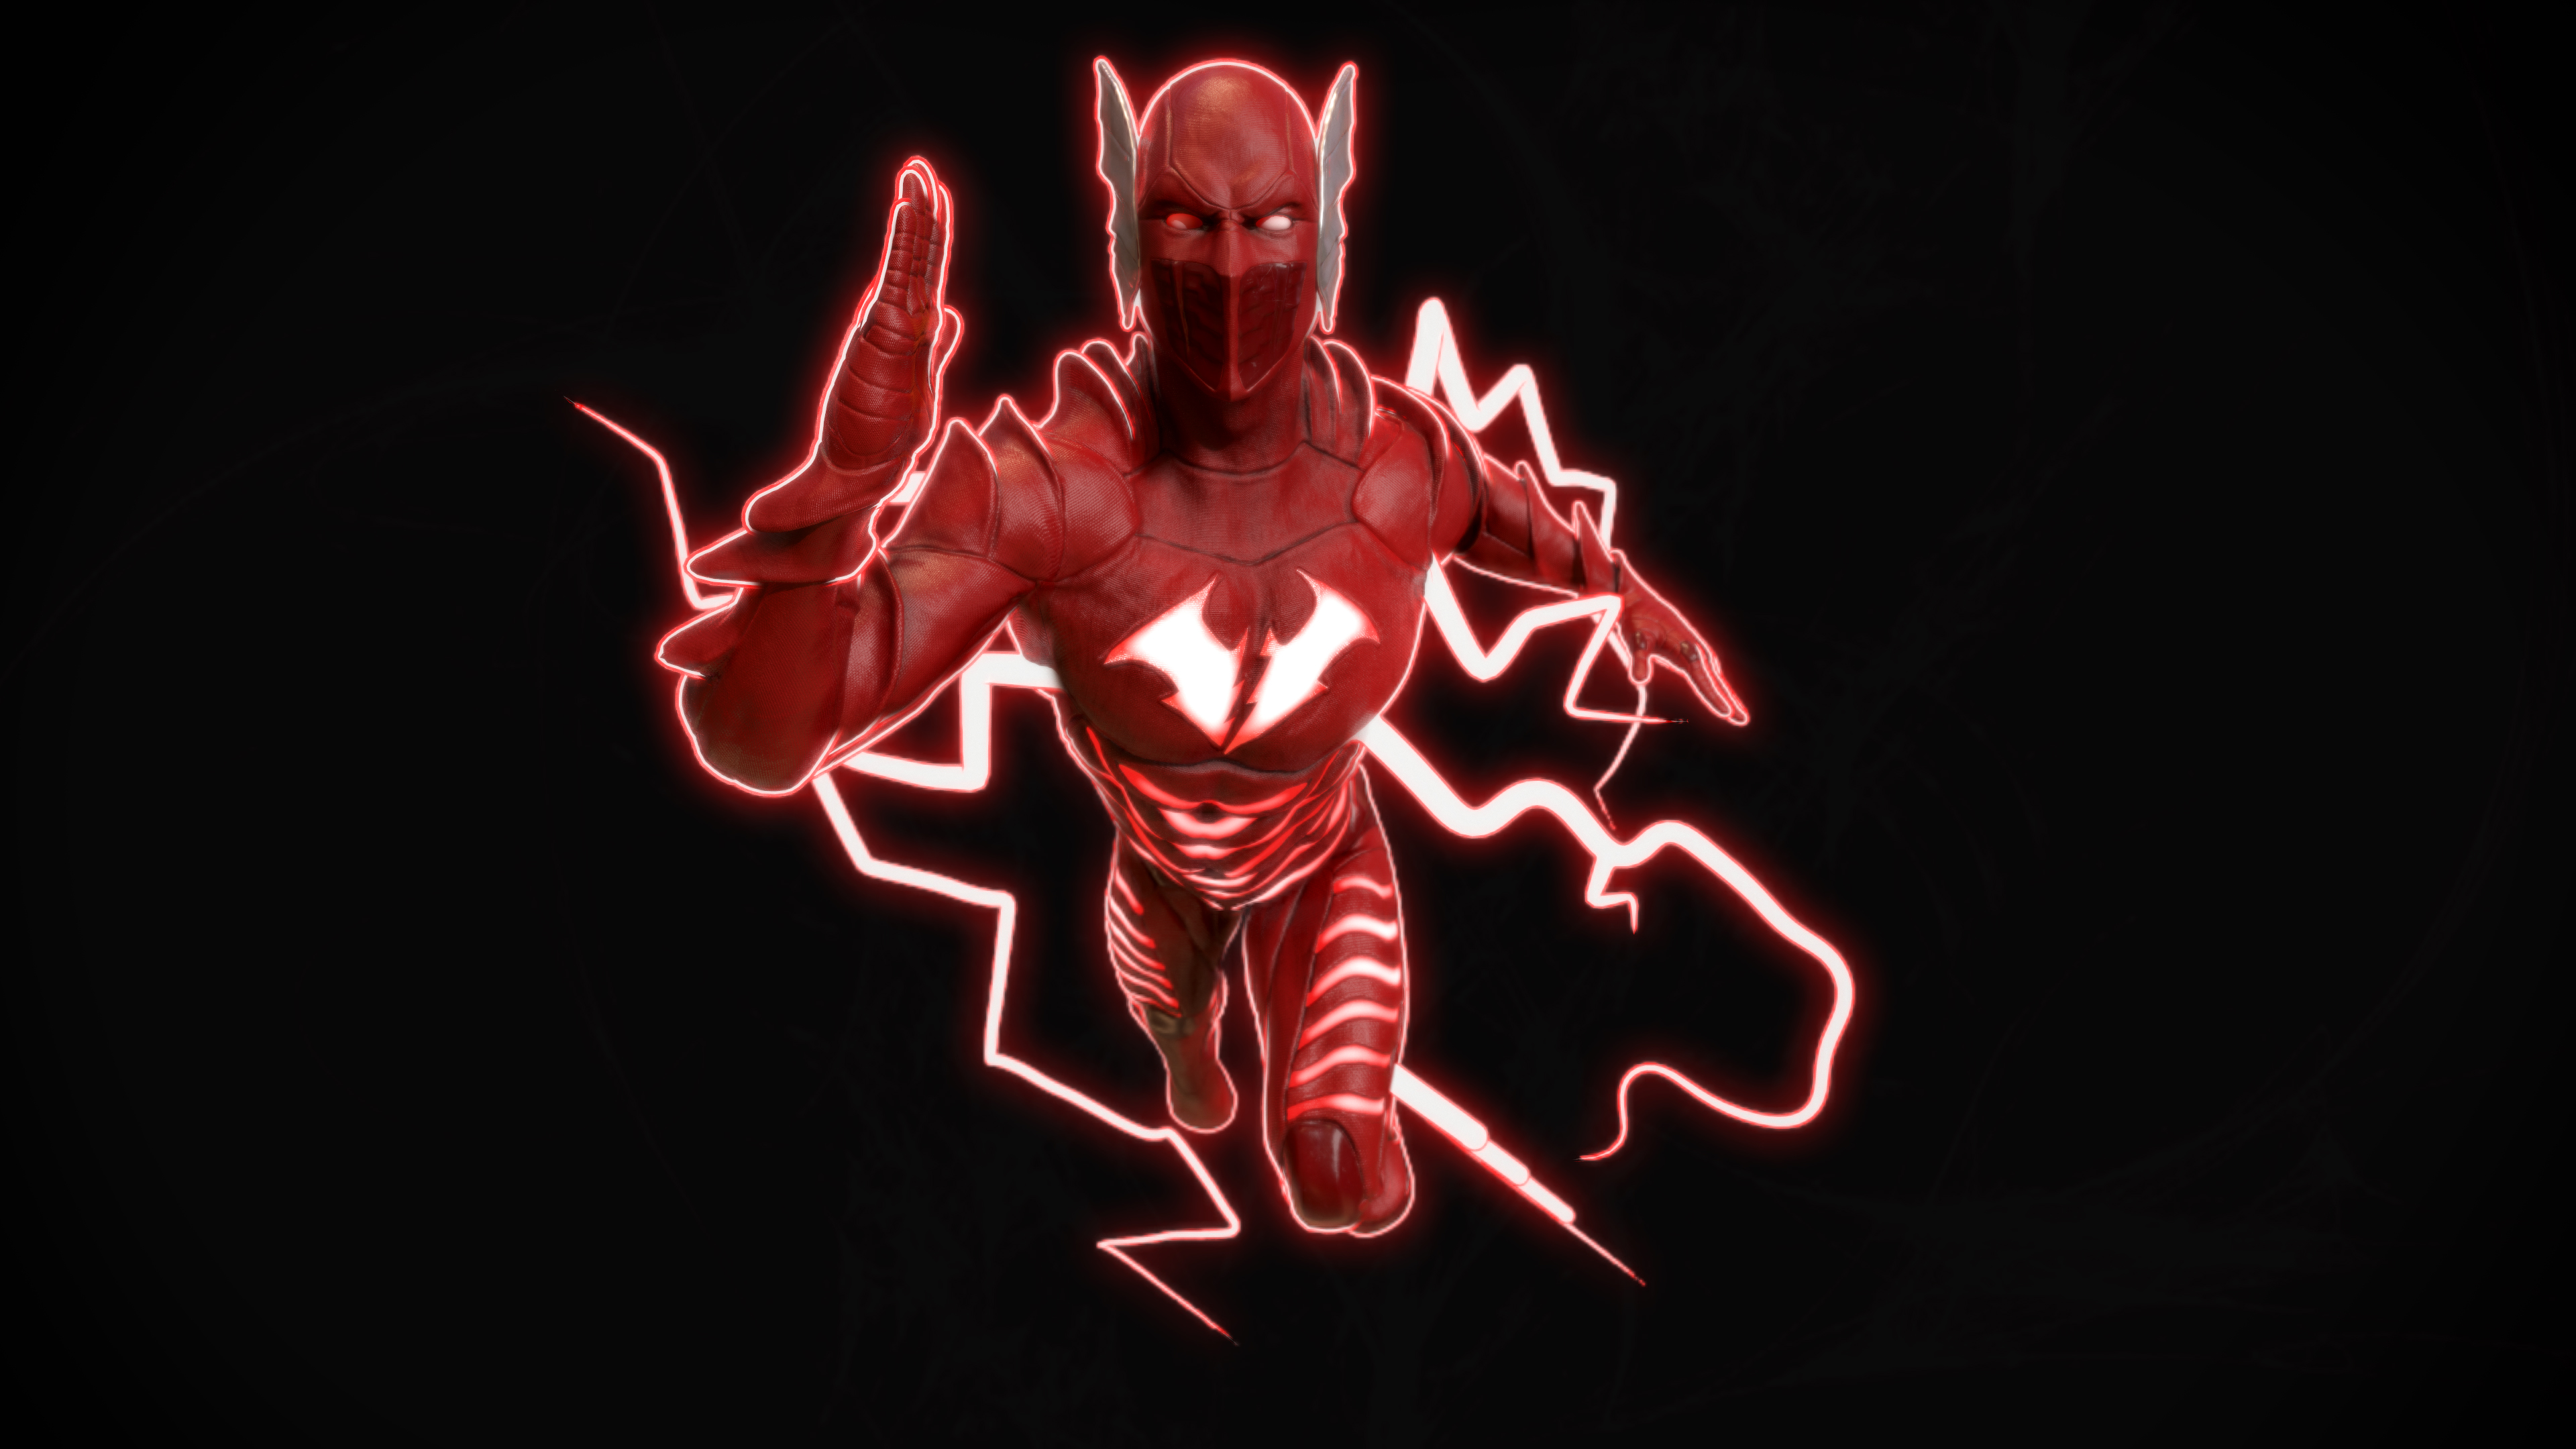 Batman Red Death